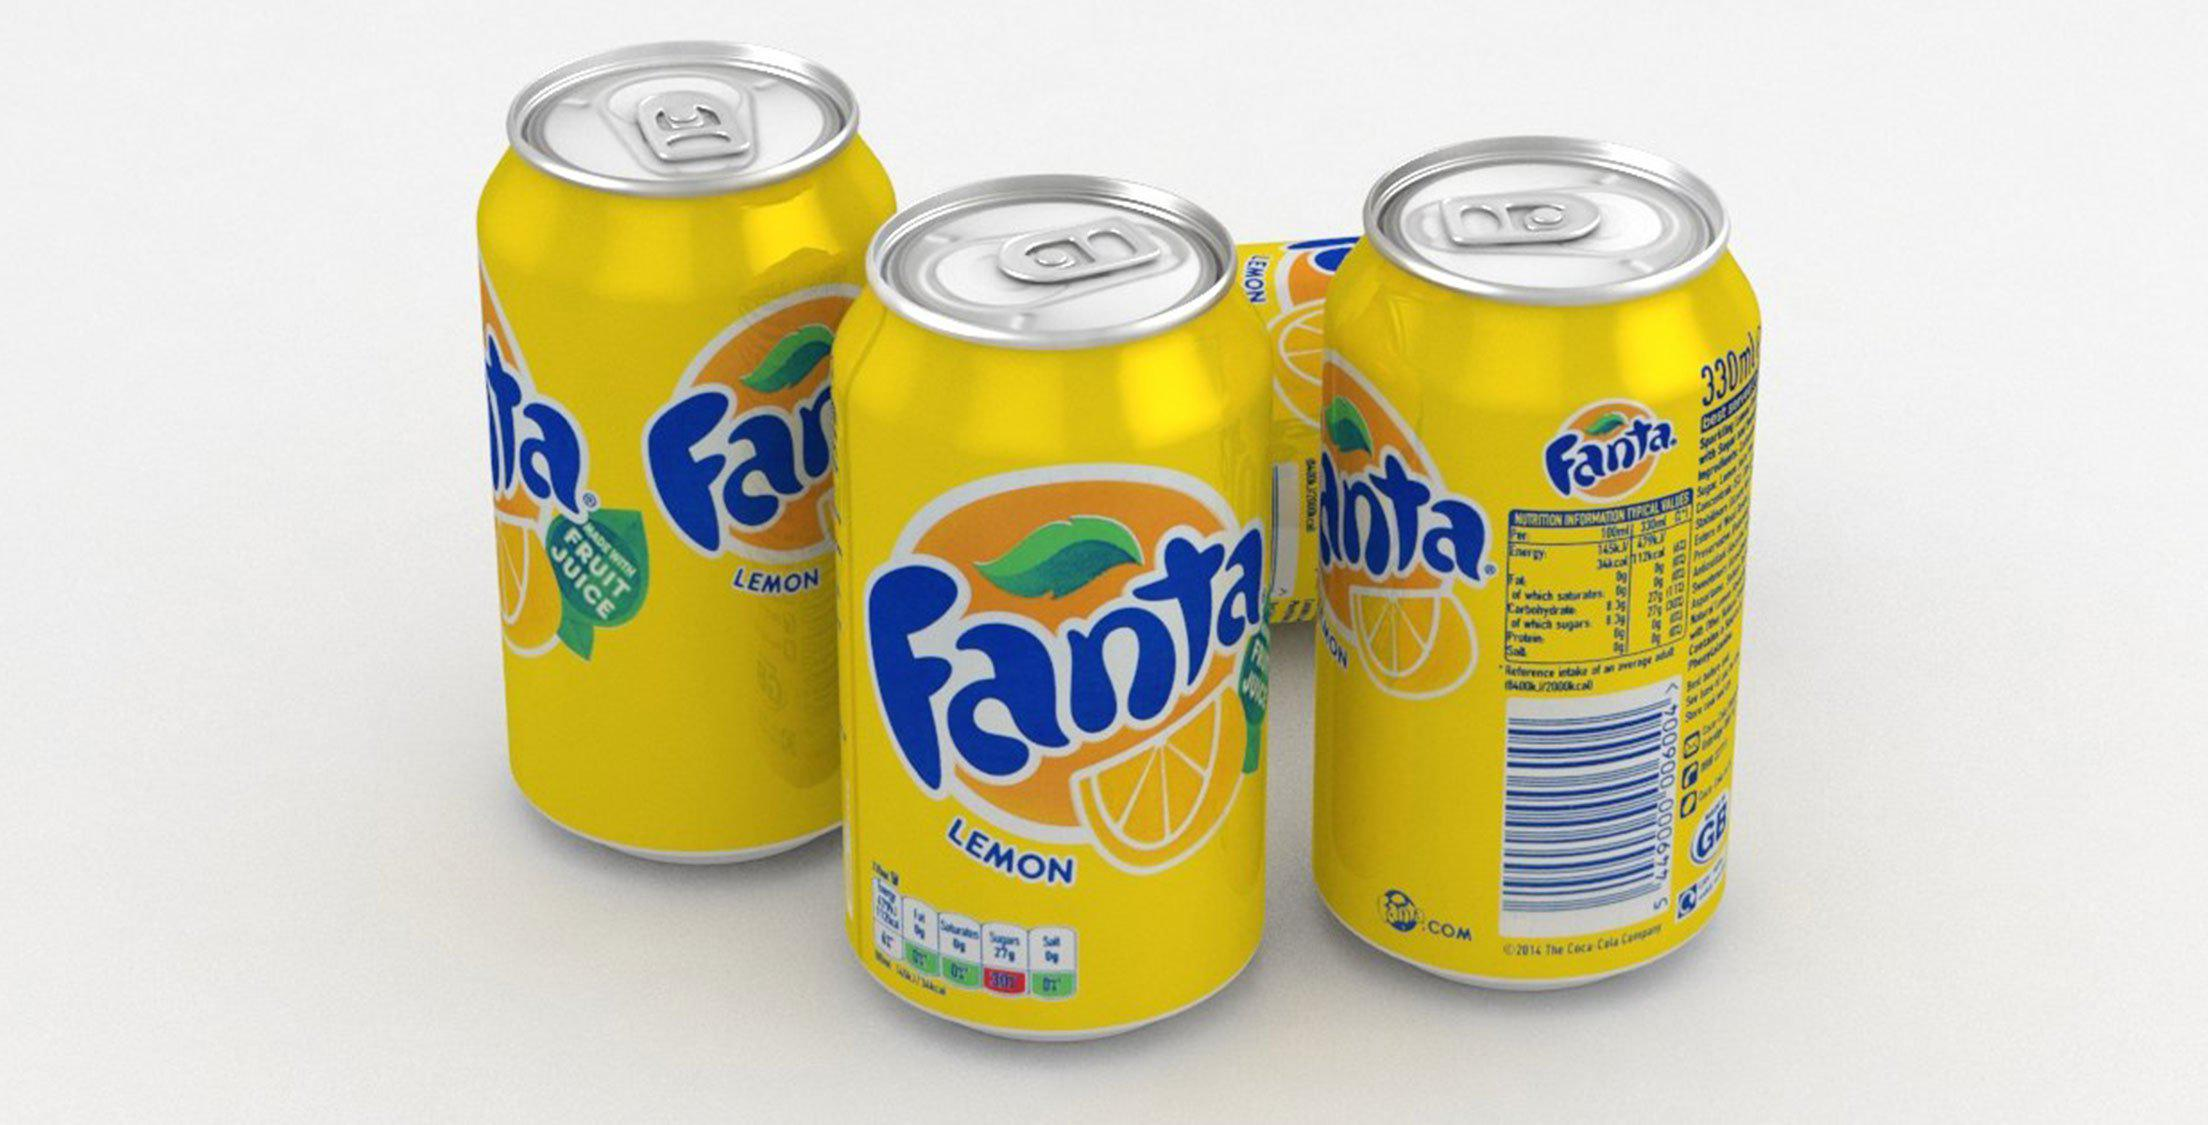 6 crazy reactions to Fanta Lemon being discontinued